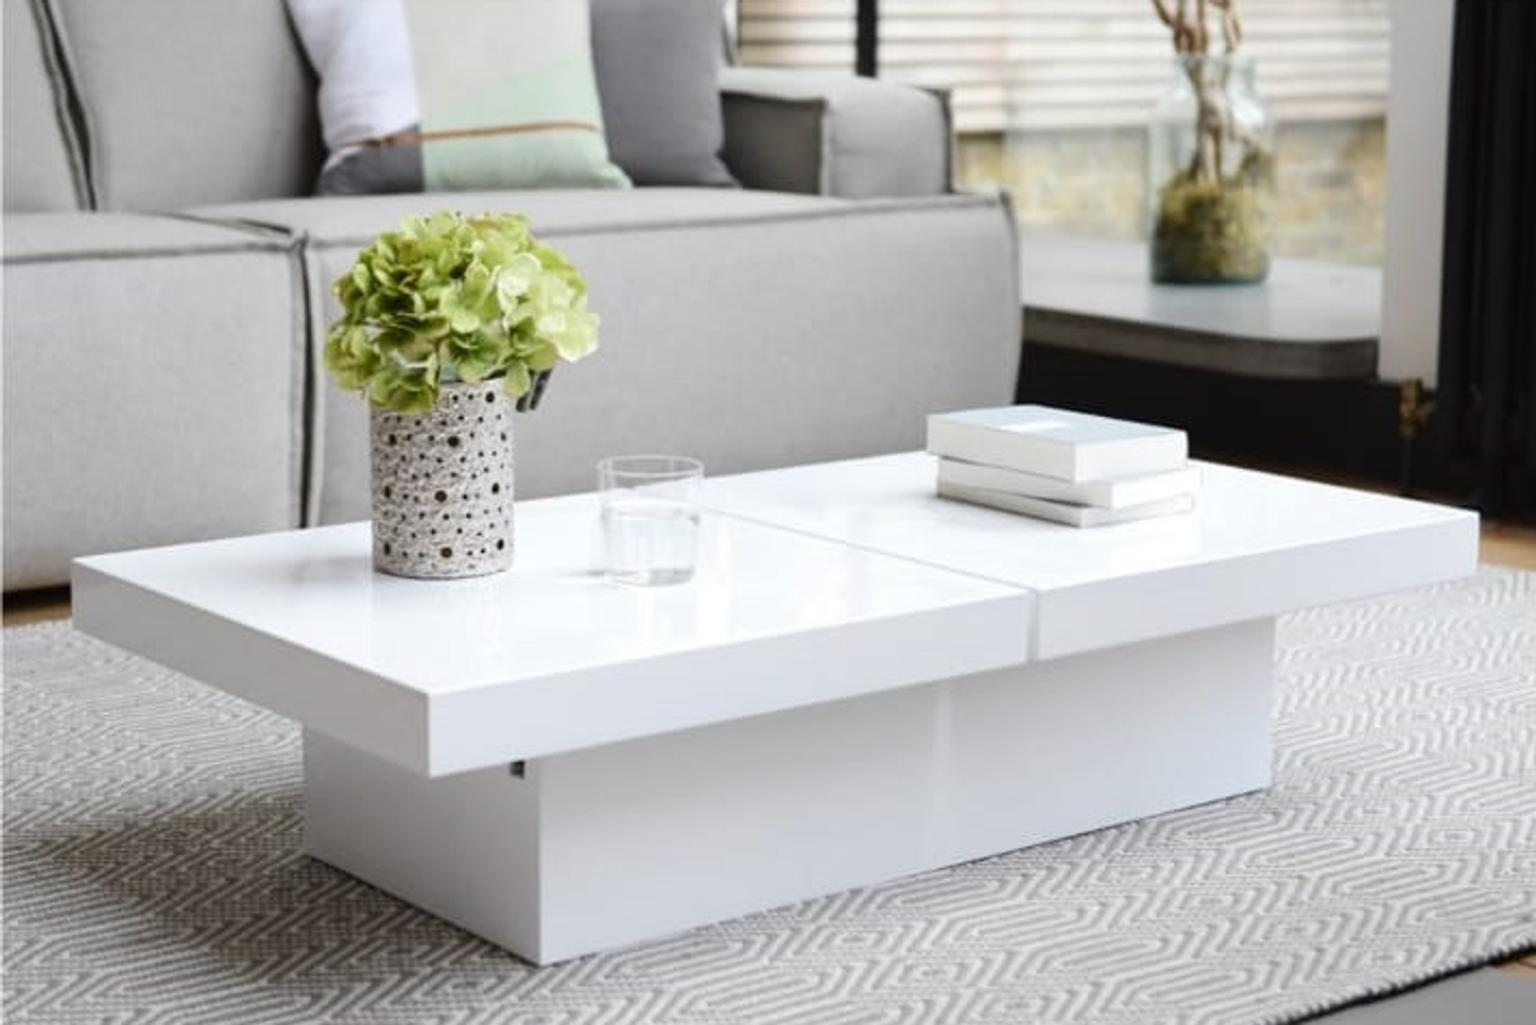 Dwell Coffee Table.Dwell Coffee Table